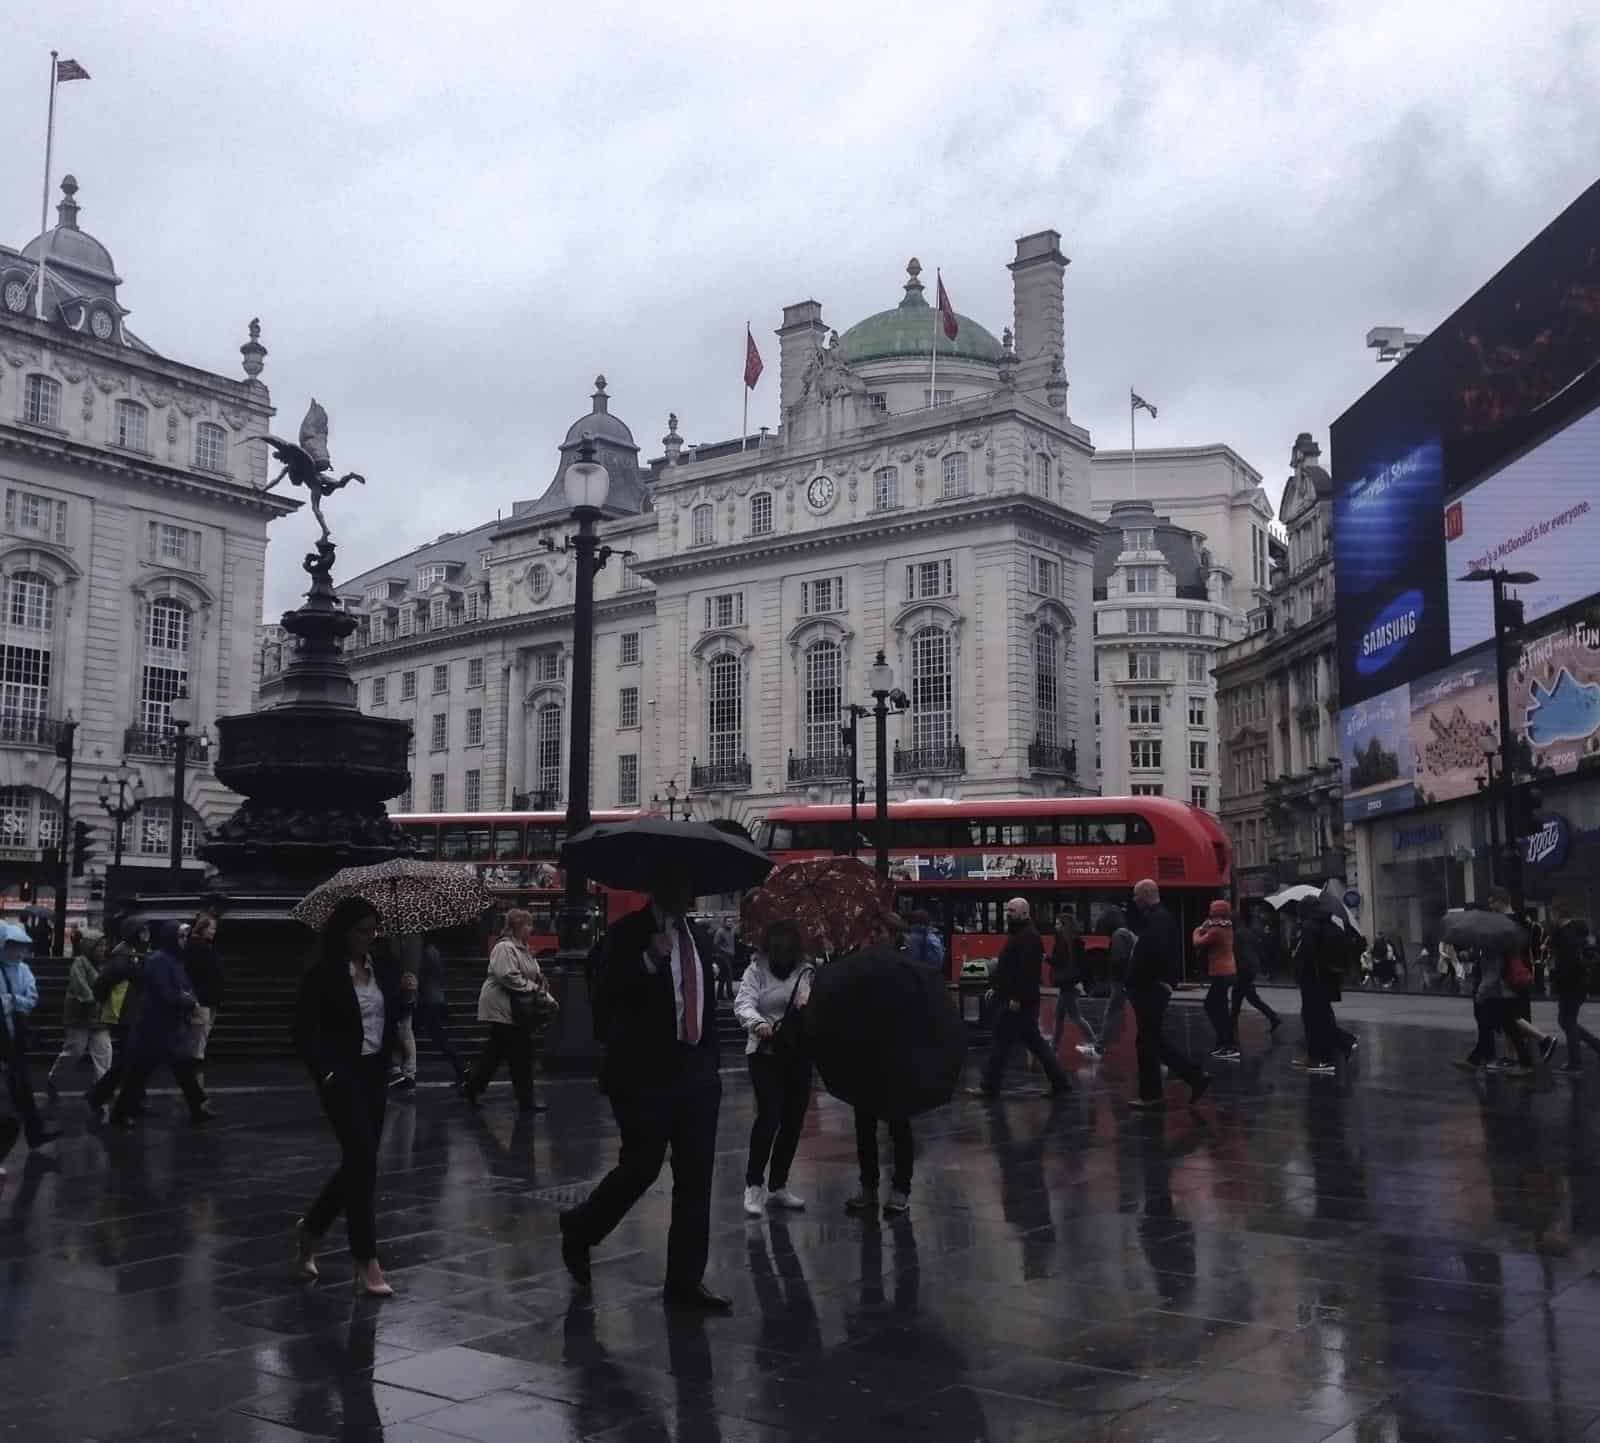 Things to do in London in the rain